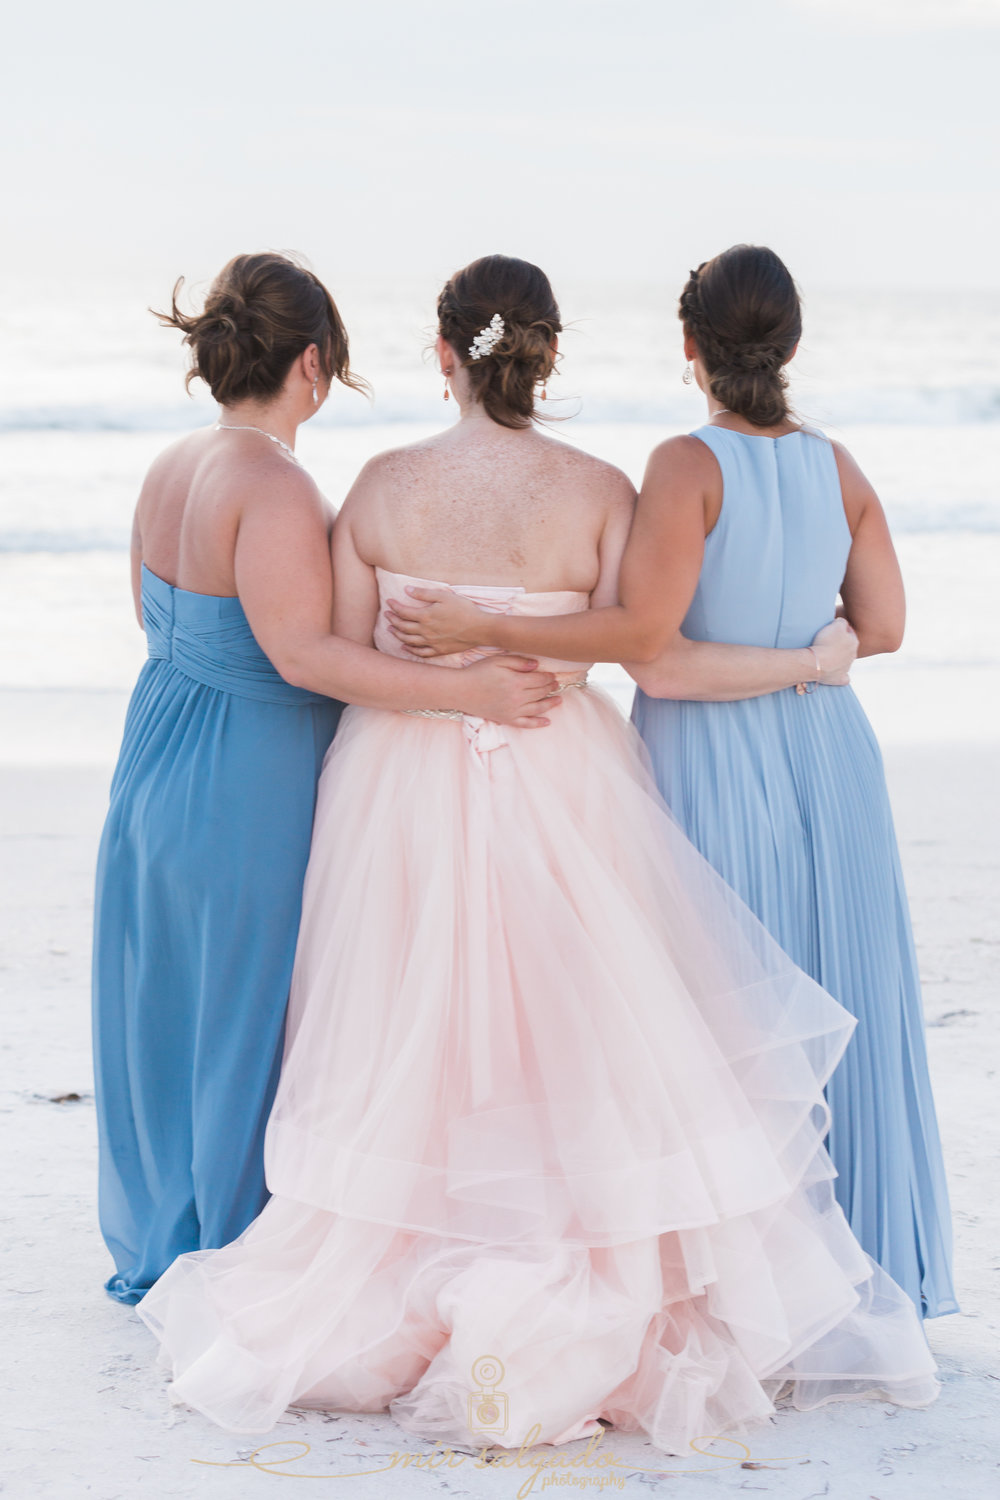 St.Pete-wedding, Bridesmaids-wedding-photo